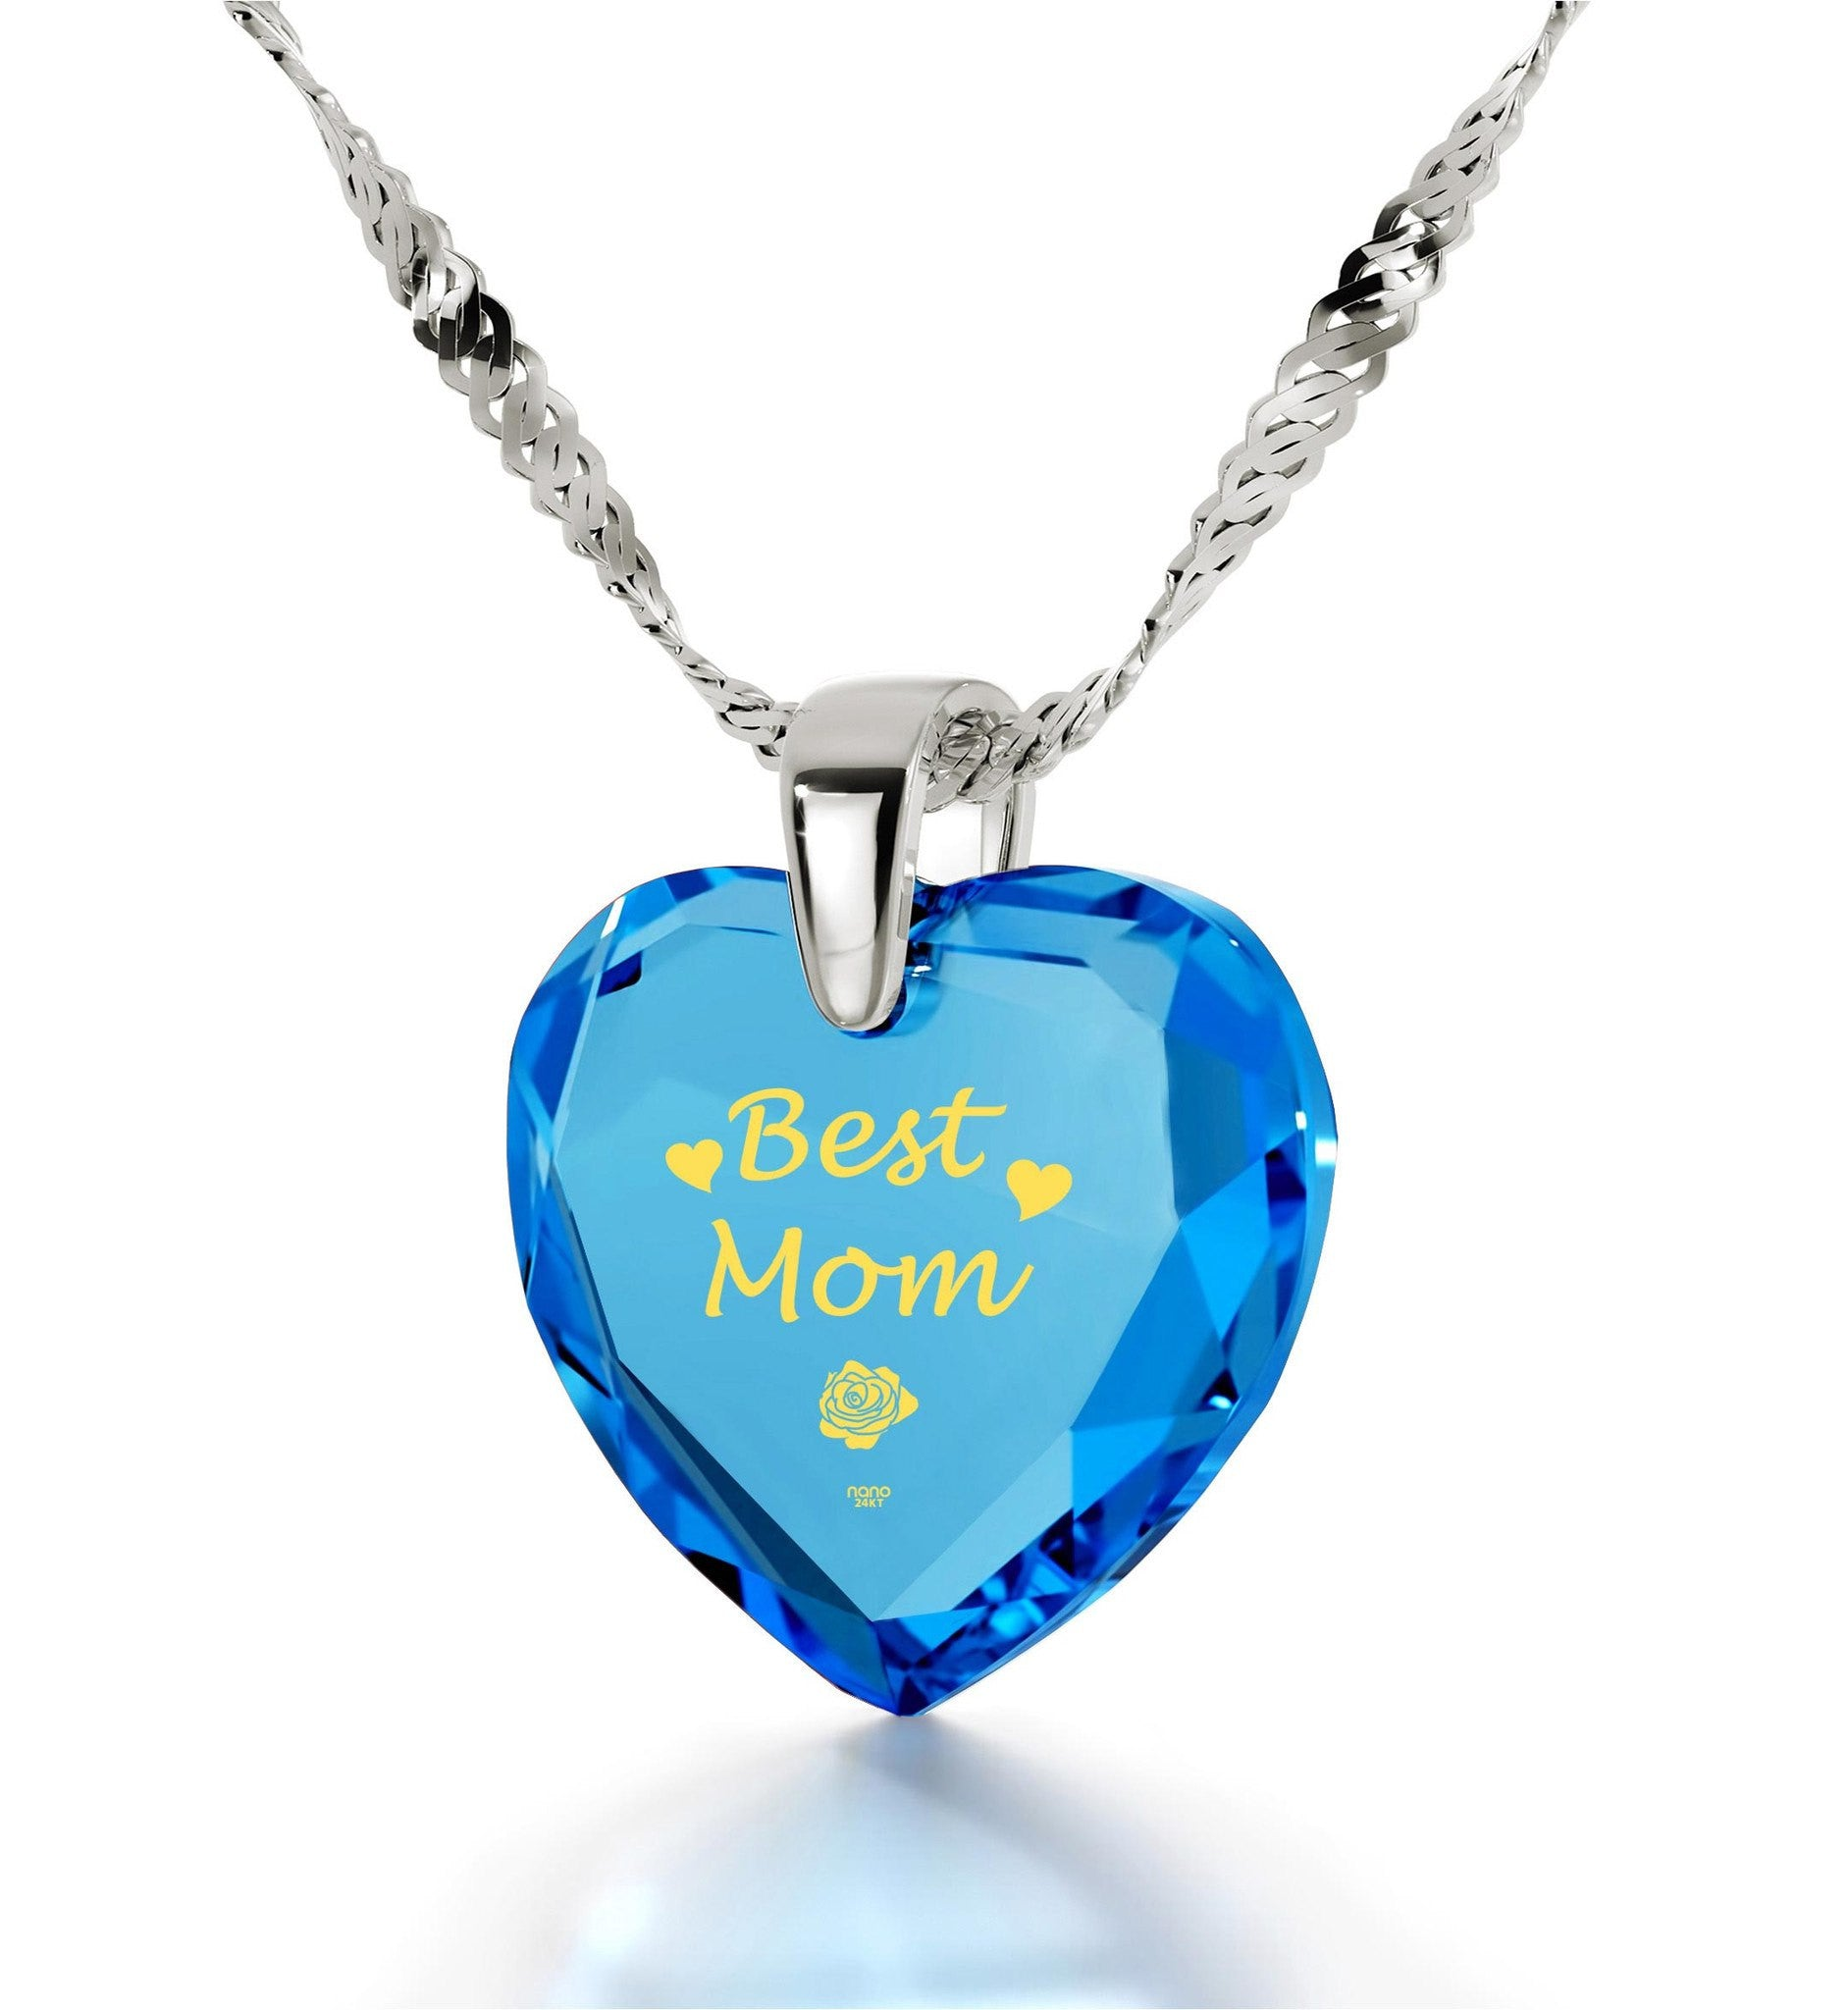 Good Presents for Mom,White Gold Chain with Pendant, Best Gift for Mother's Day, by Nano Jewelry